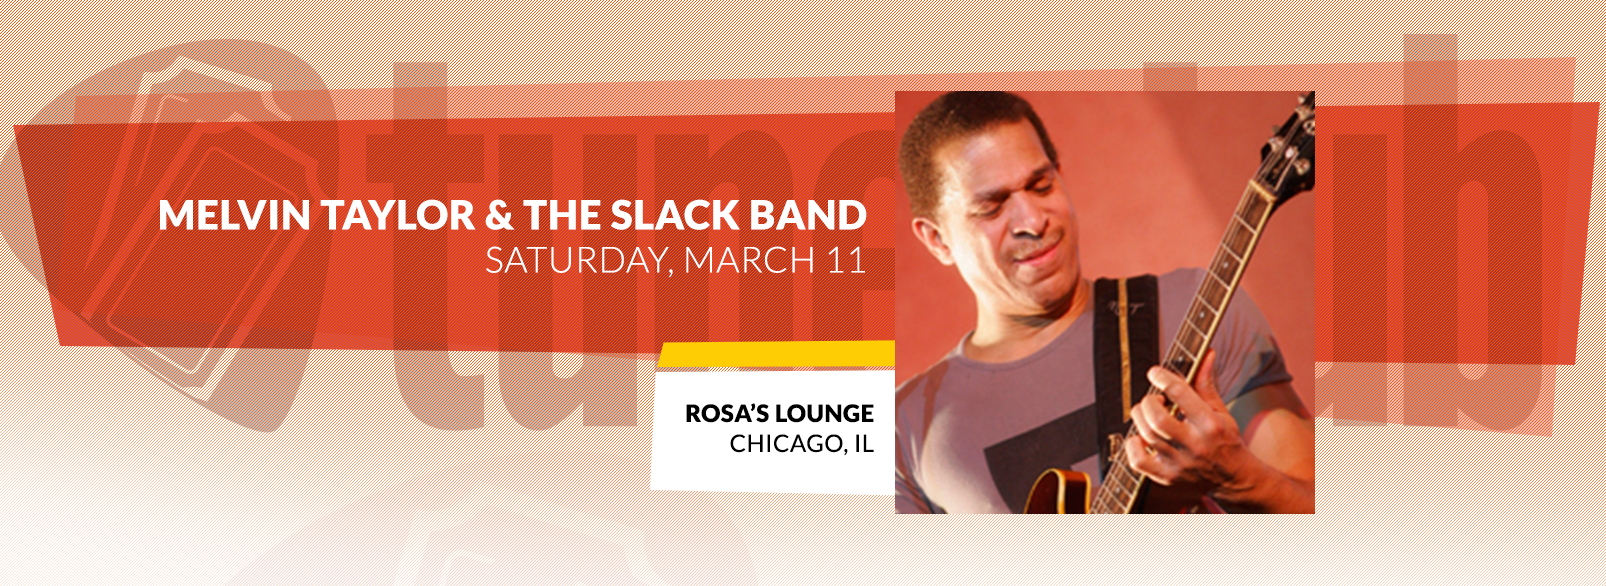 Melvin Taylor & The Slack Band @ Rosa's Lounge